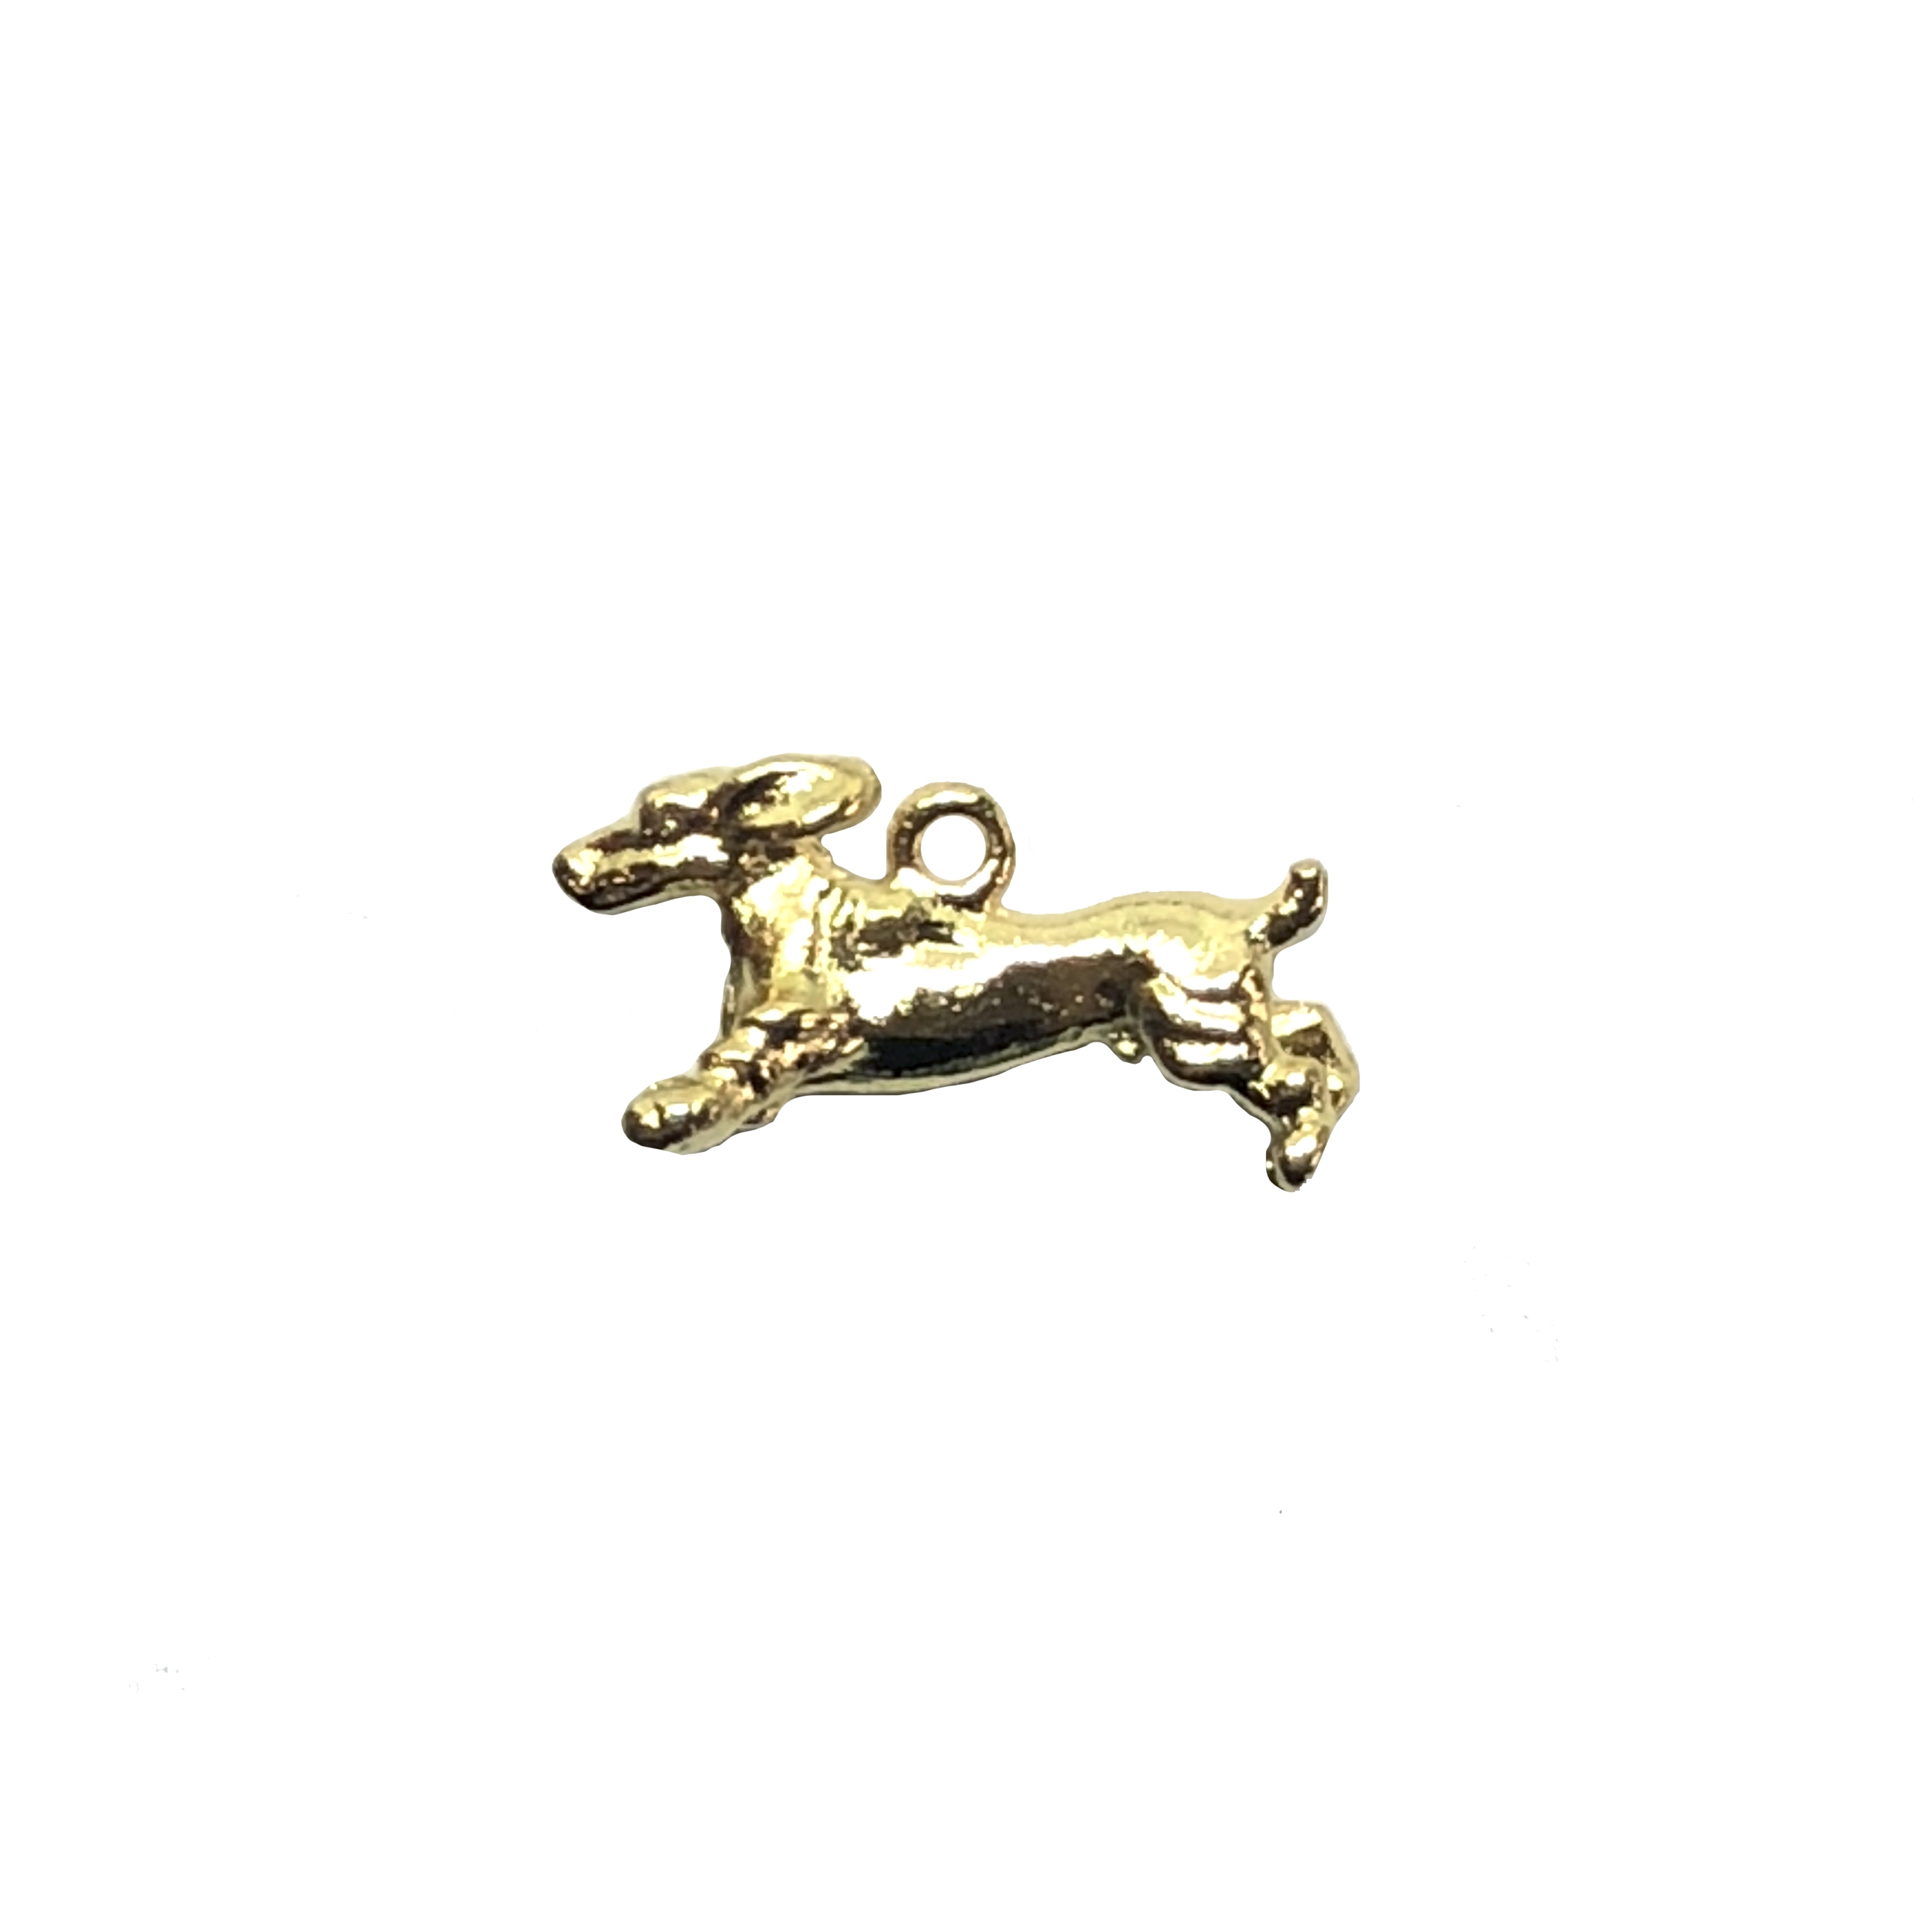 Dachshund charm, 22K gold finish pewter, B'sue by 1928, jewelry charm, dog, dog charm, charm, dachshund, gold, lead free pewter, gold finish, US made, designer jewelry, vintage supplies, B'sue Boutiques, 20x10mm, 08529